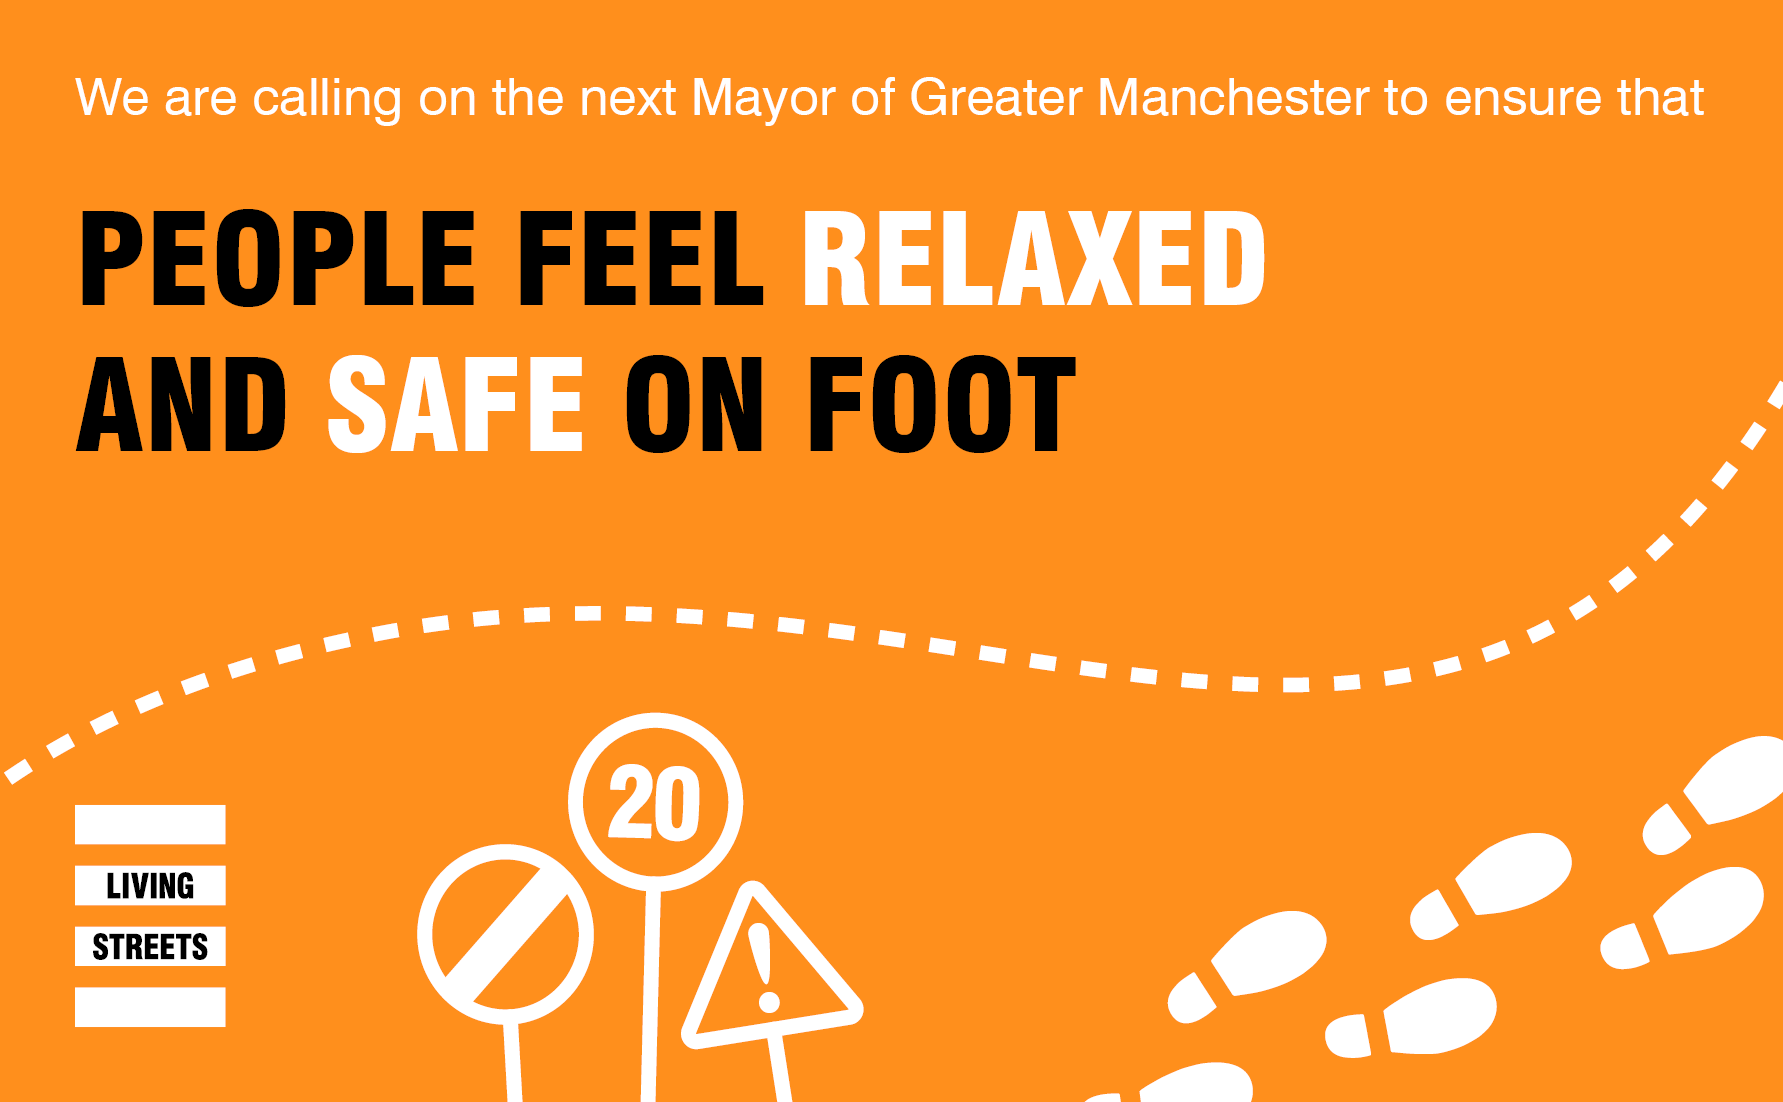 People feel relaxed and safe on foot